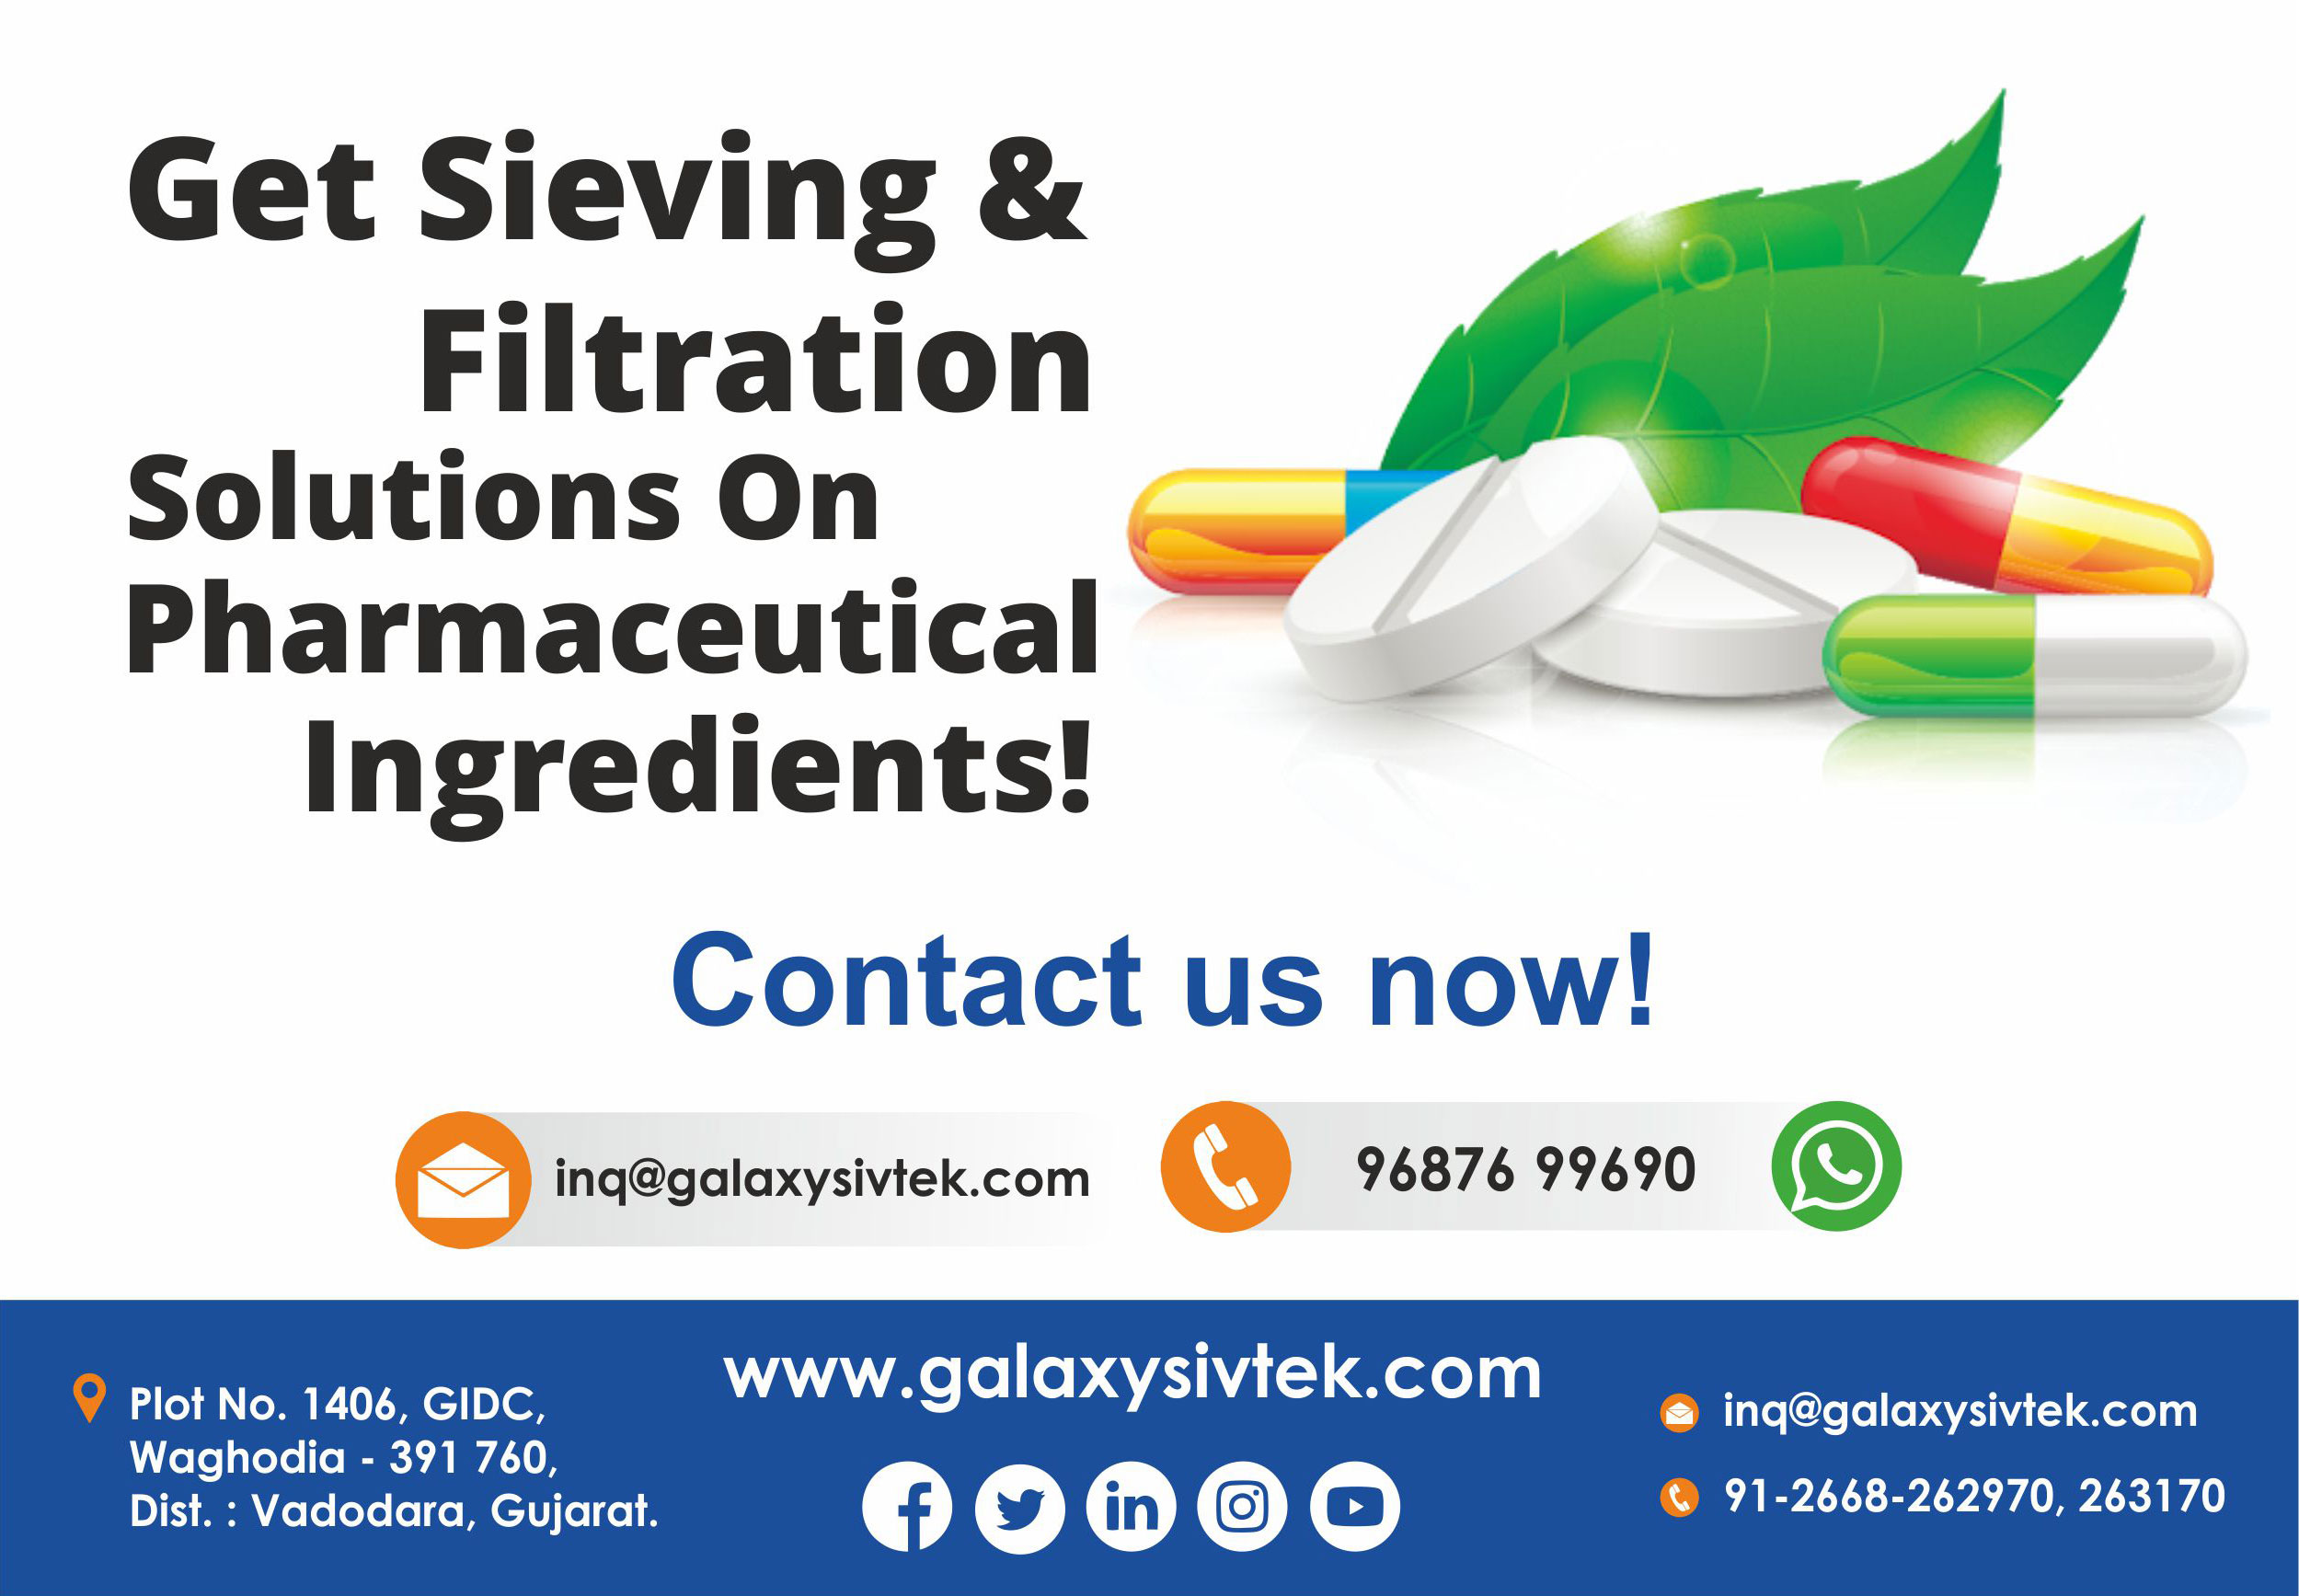 Contact us for pharma sieving equipment